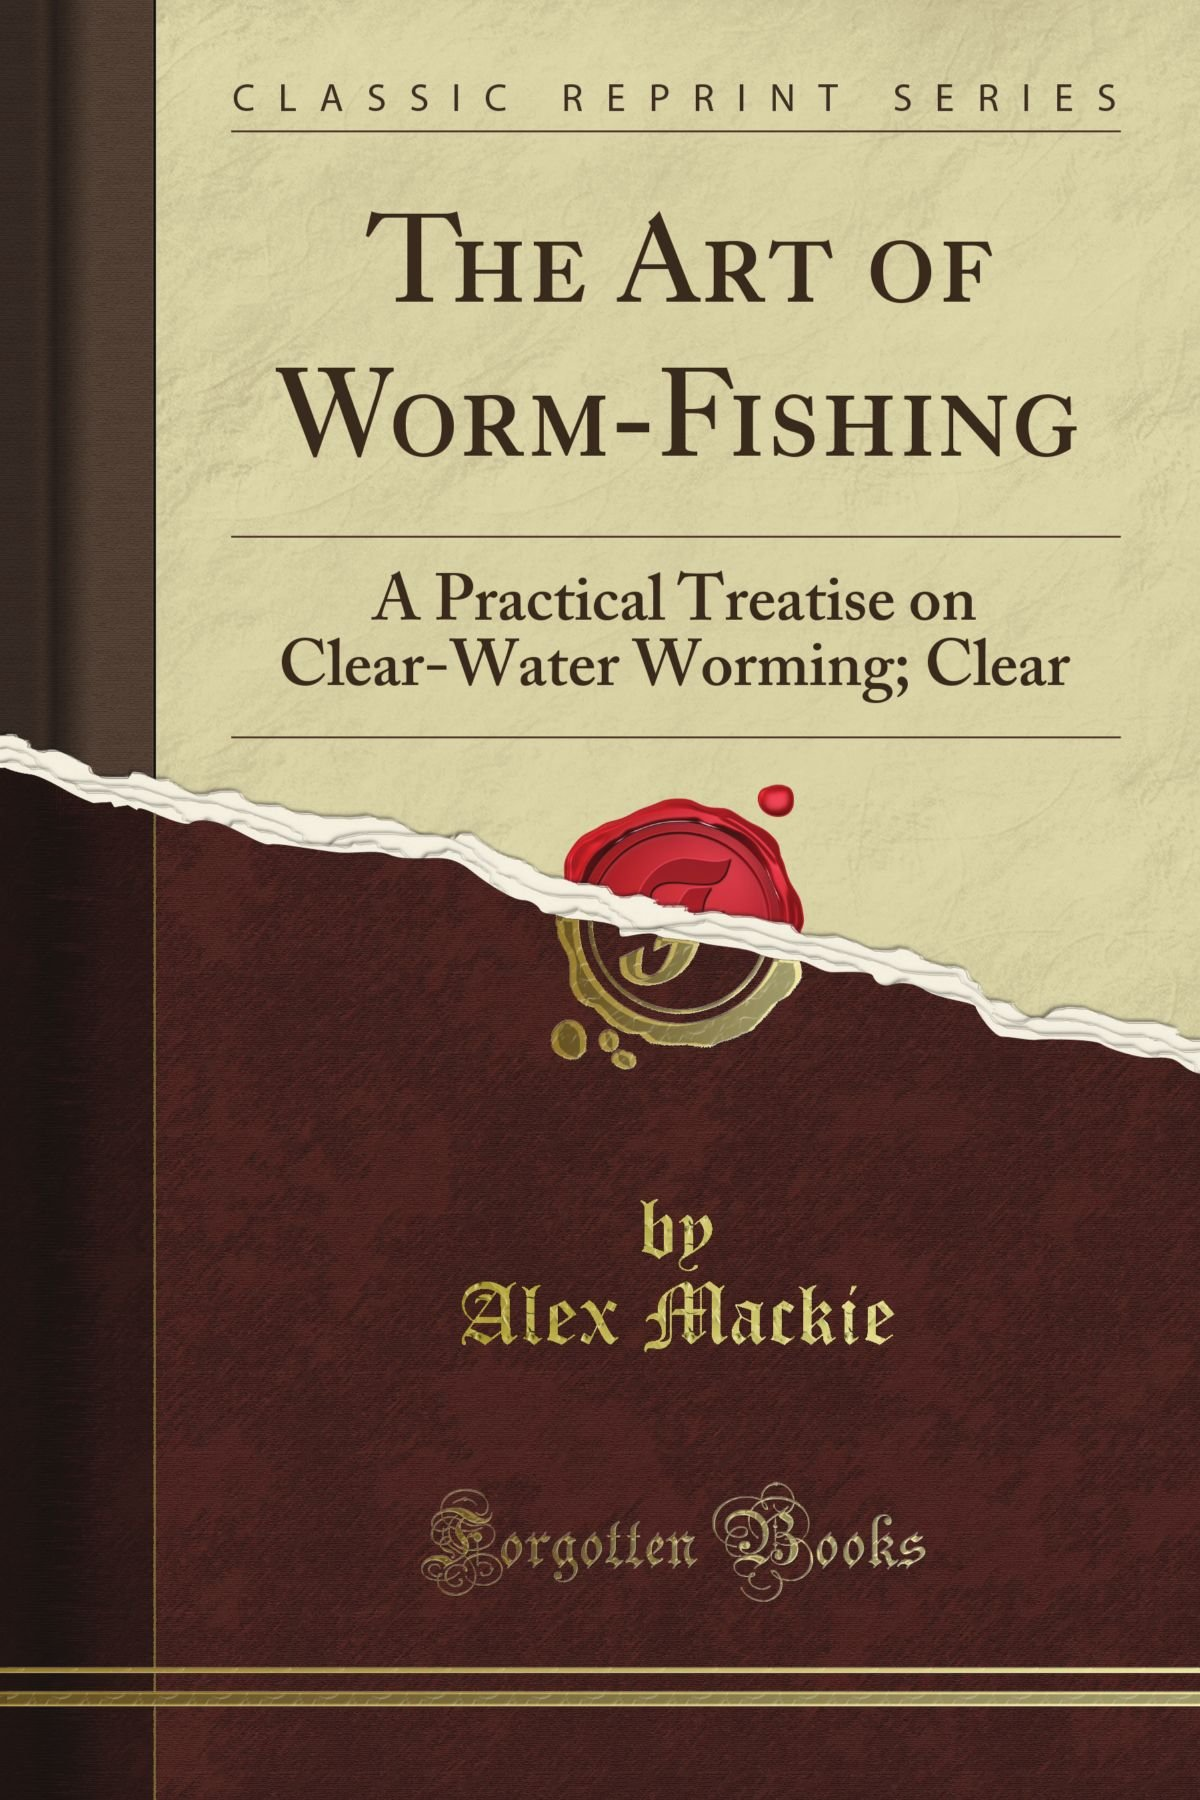 Download The Art of Worm-Fishing: A Practical Treatise on Clear-Water Worming; Clear (Classic Reprint) ebook